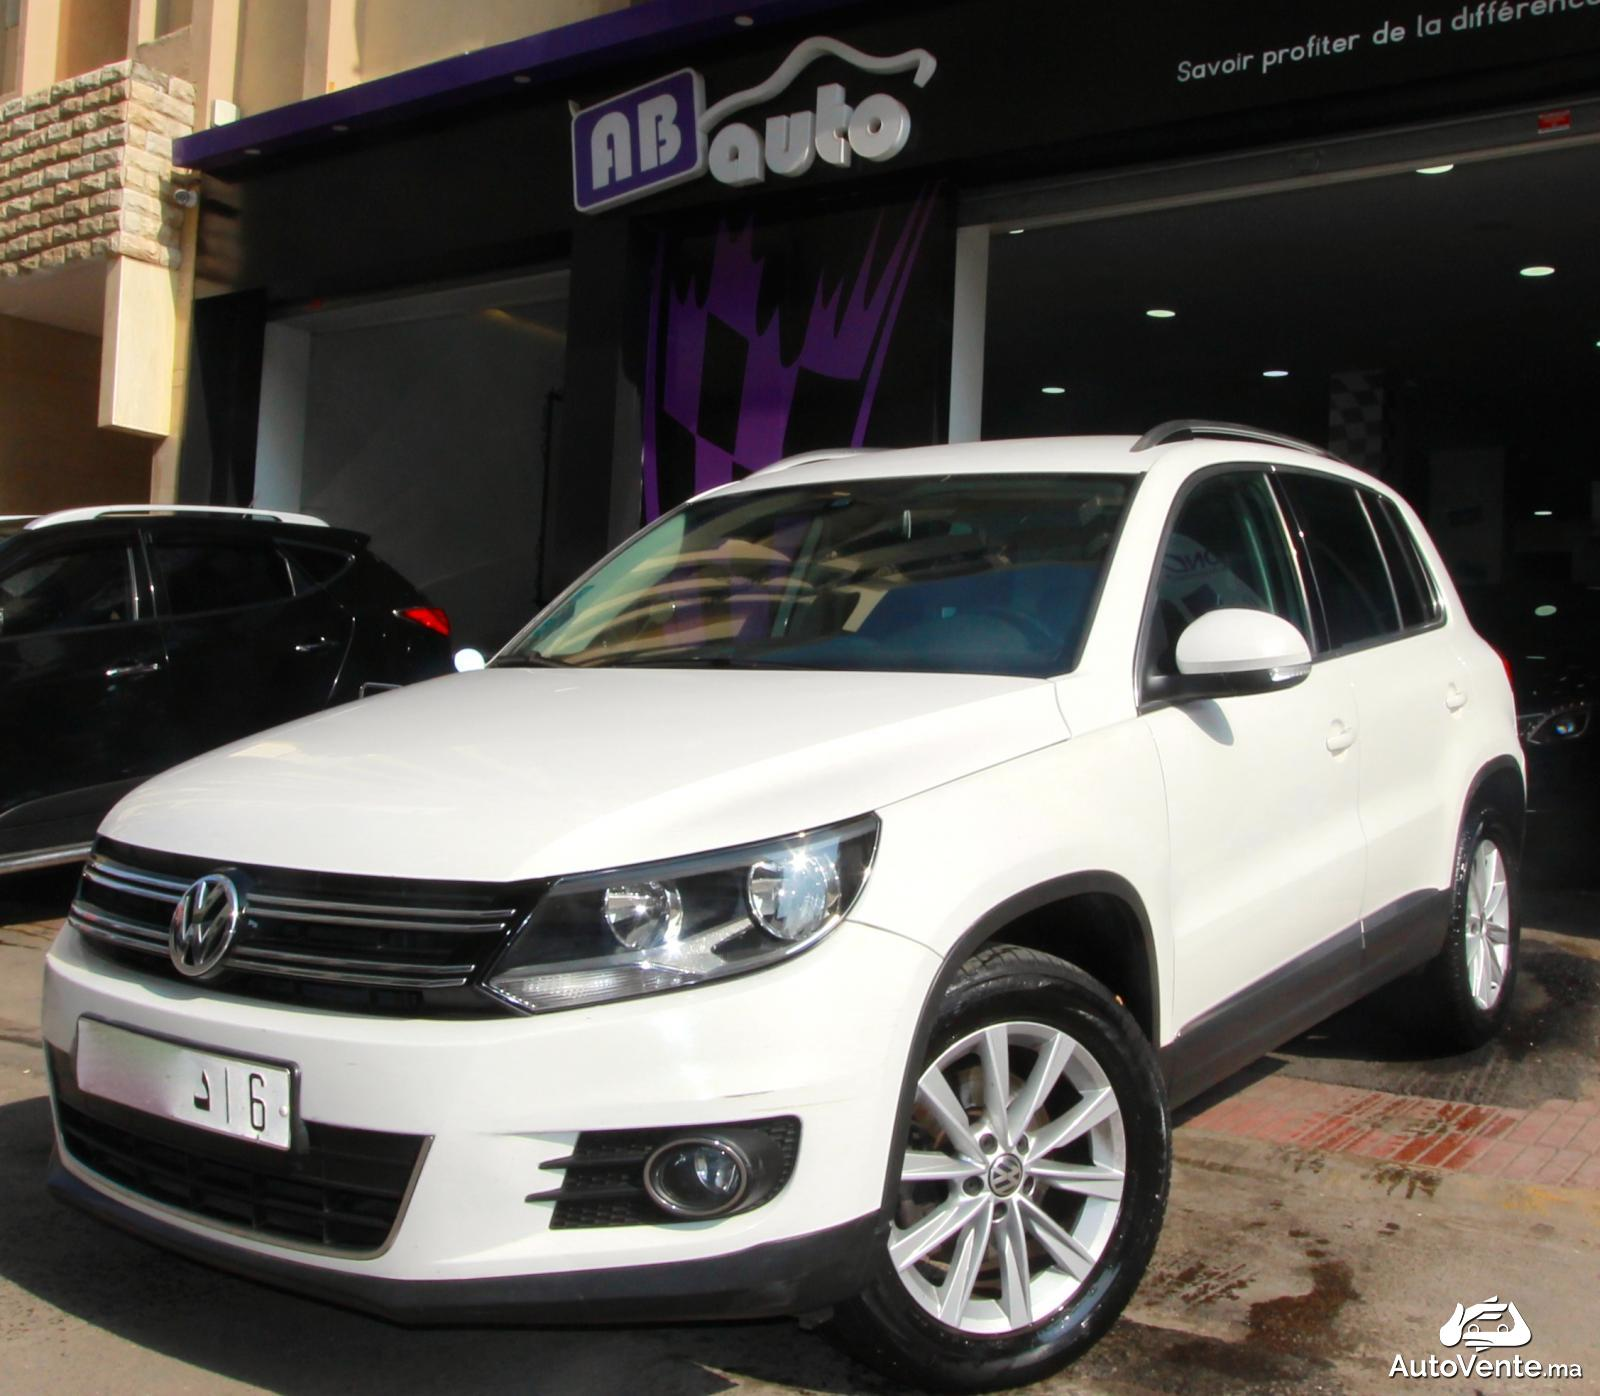 acheter volkswagen tiguan d 39 occasion a casablanca maroc. Black Bedroom Furniture Sets. Home Design Ideas